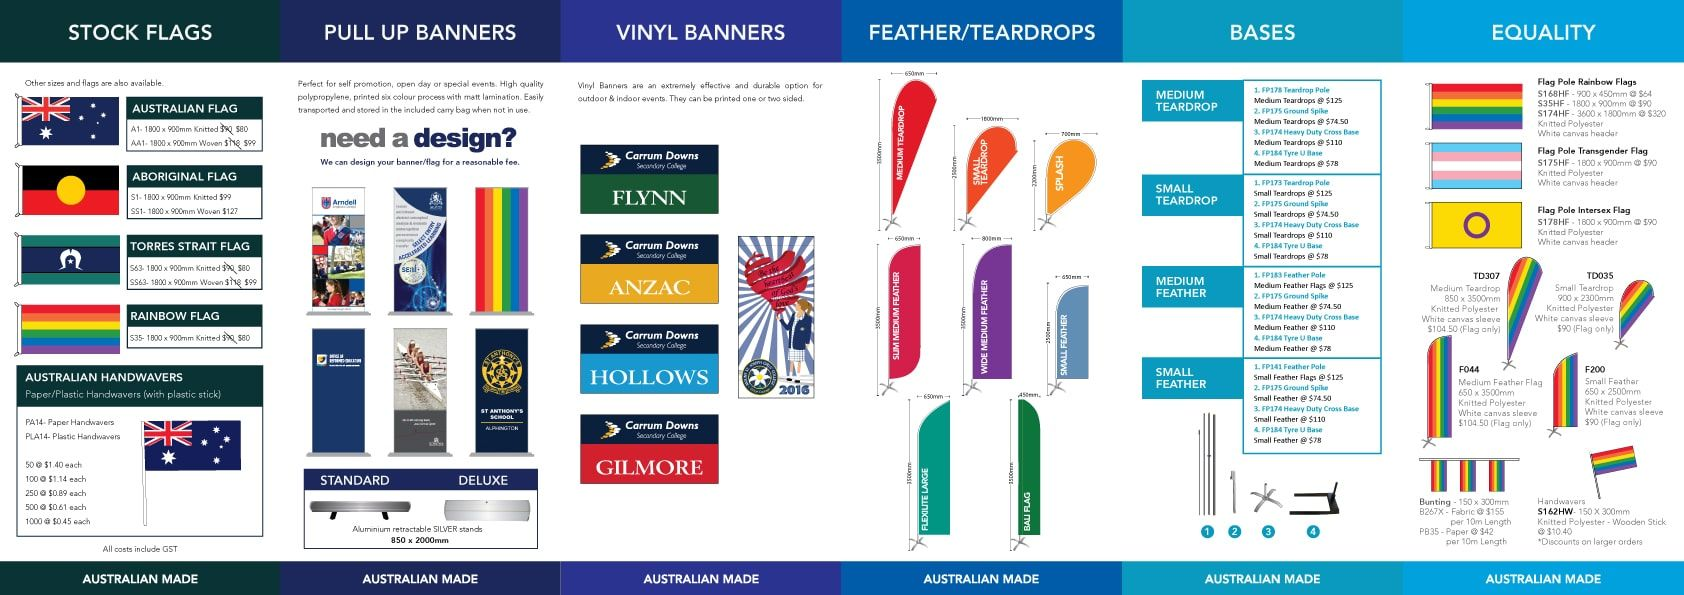 General Flags and Banners page 2